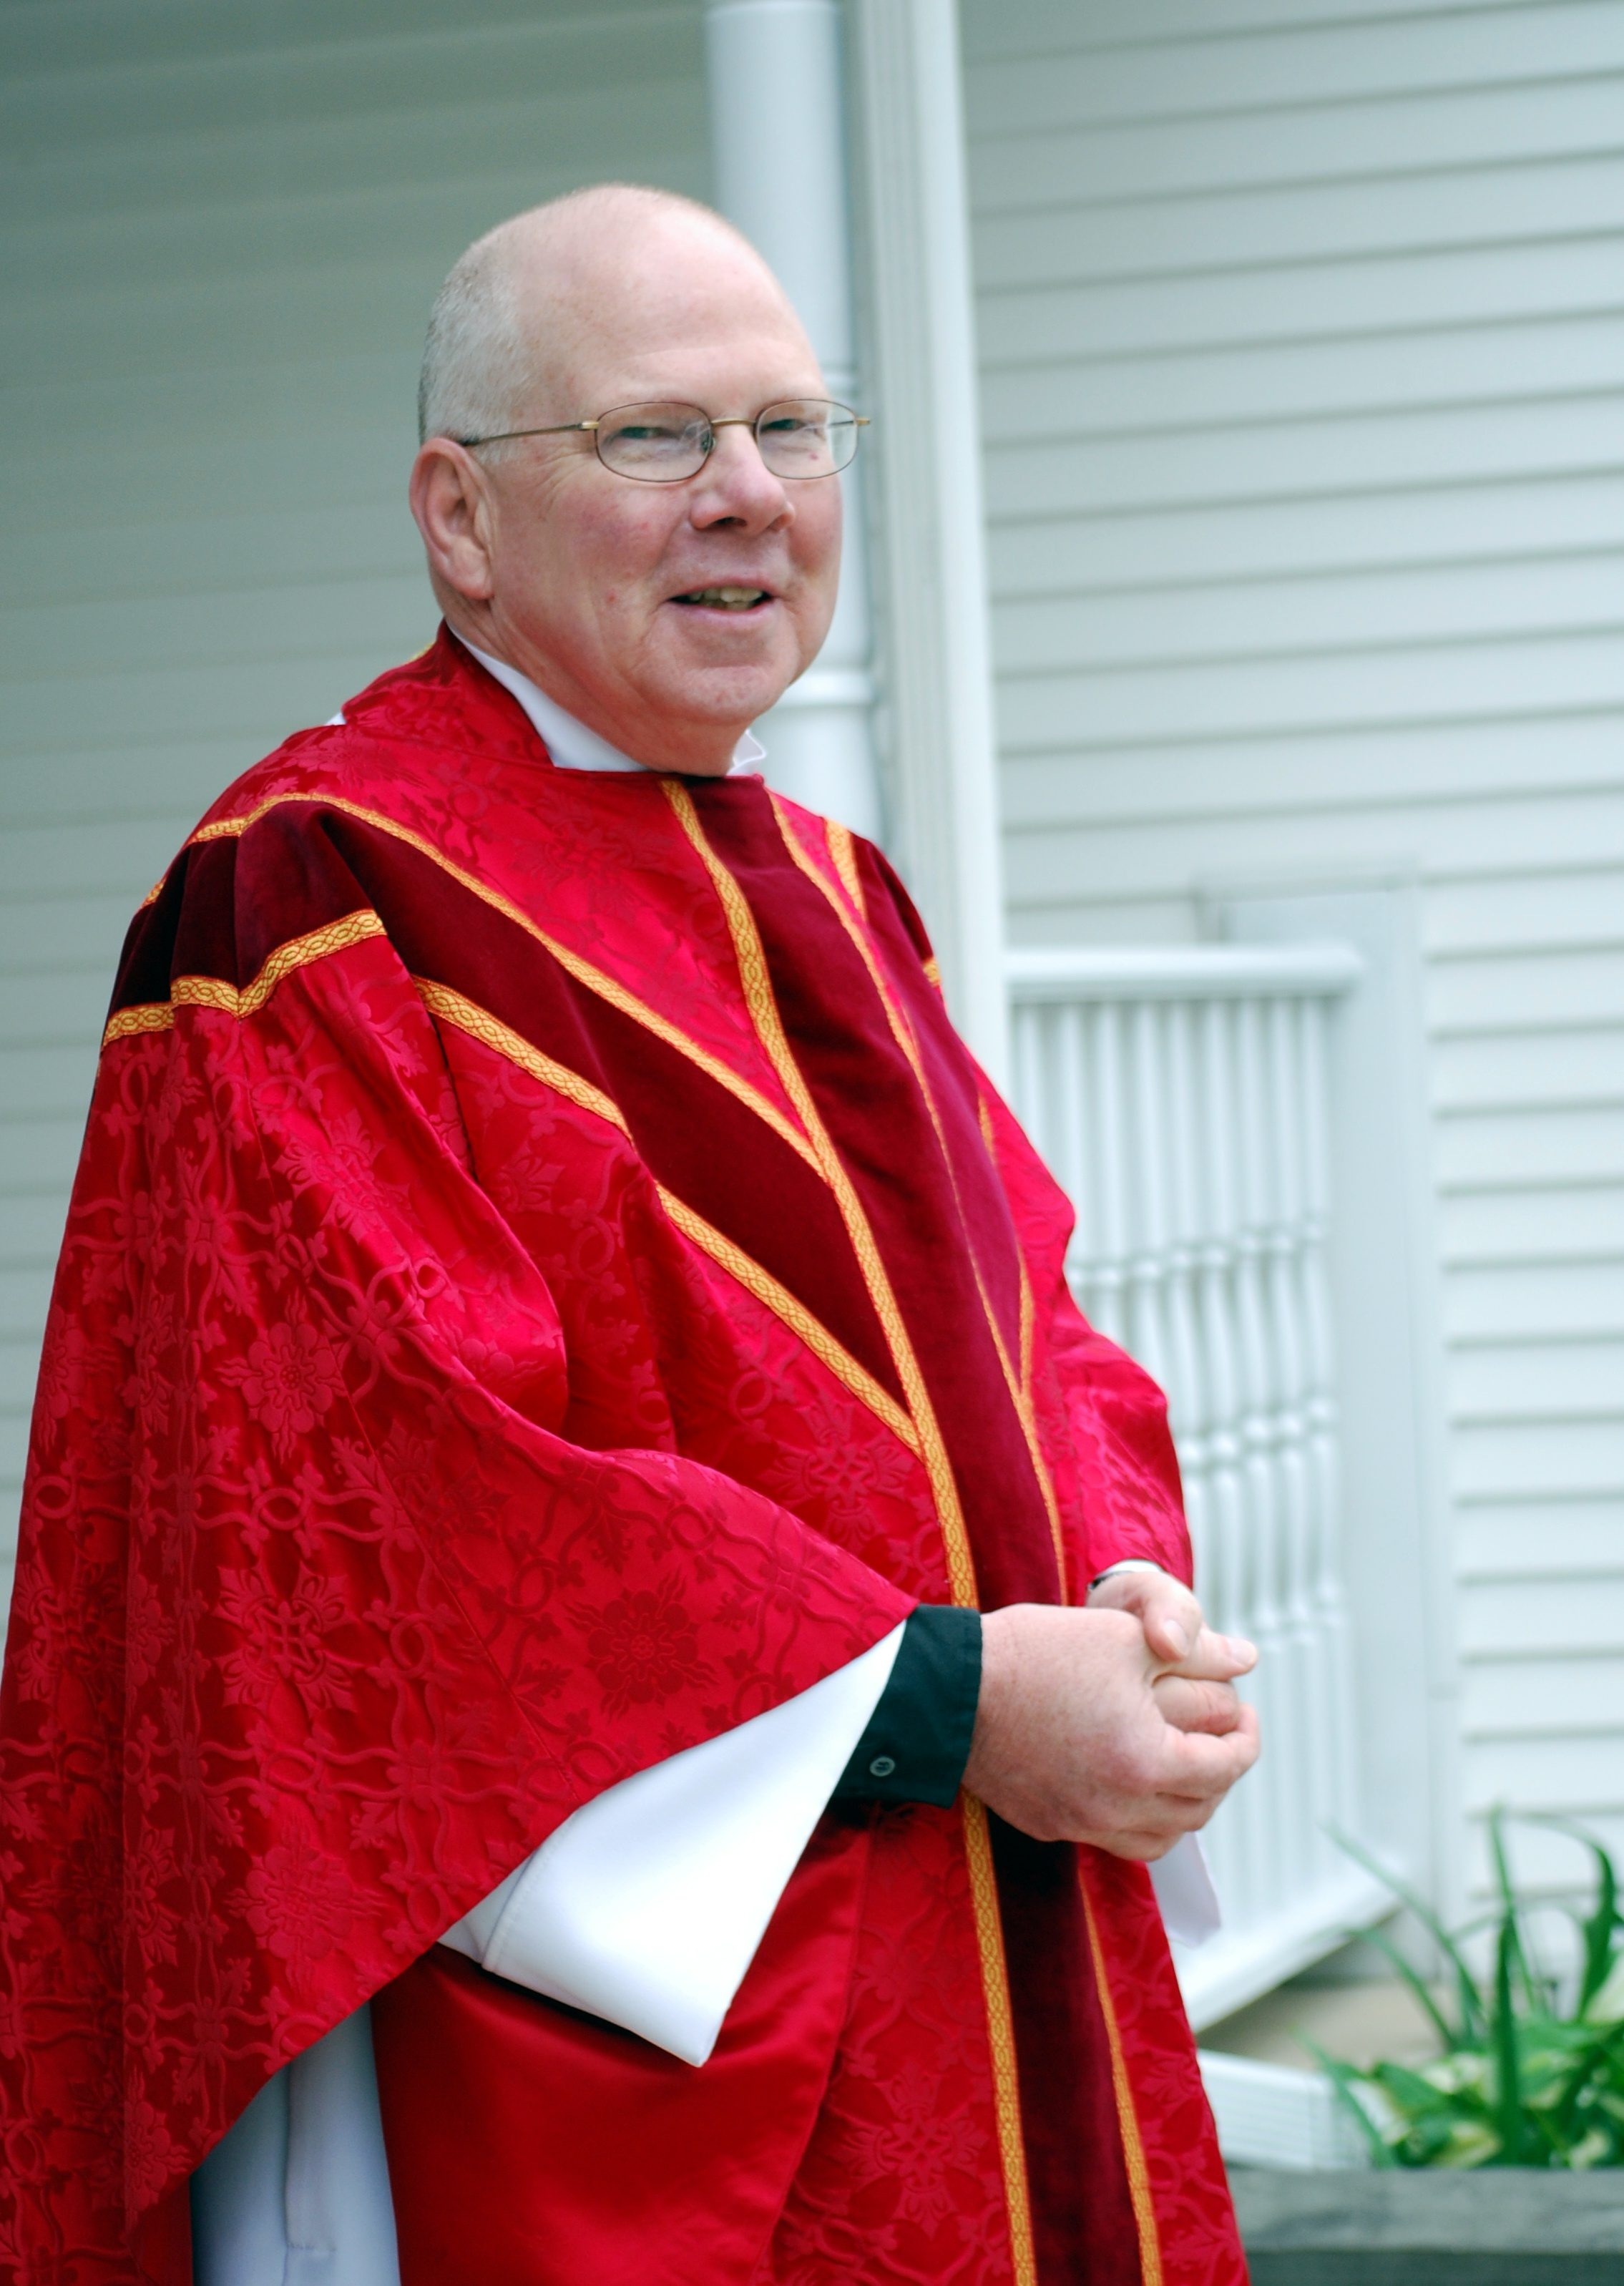 The Reverend Canon Paul C. Donecker